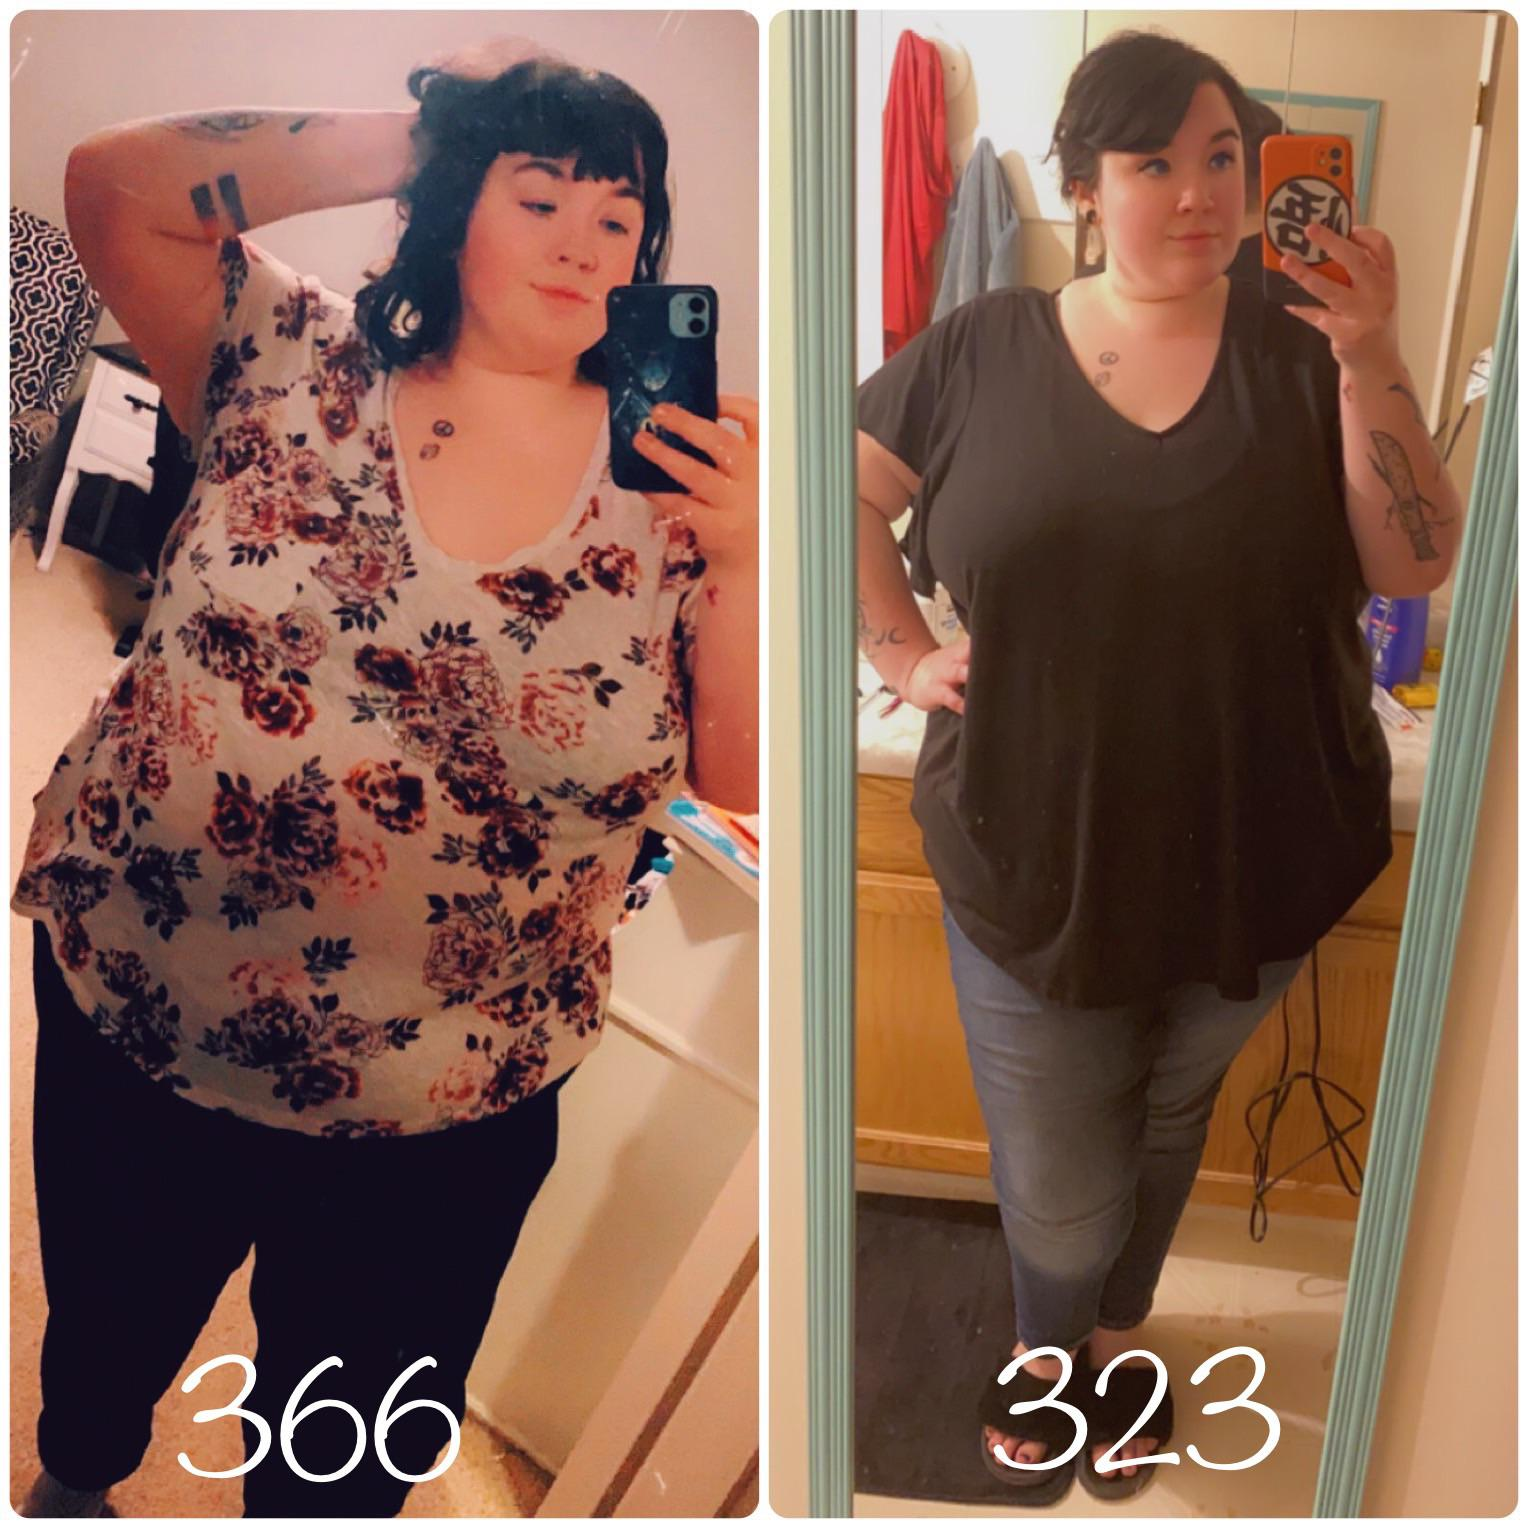 5'7 Female 43 lbs Fat Loss Before and After 366 lbs to 323 lbs